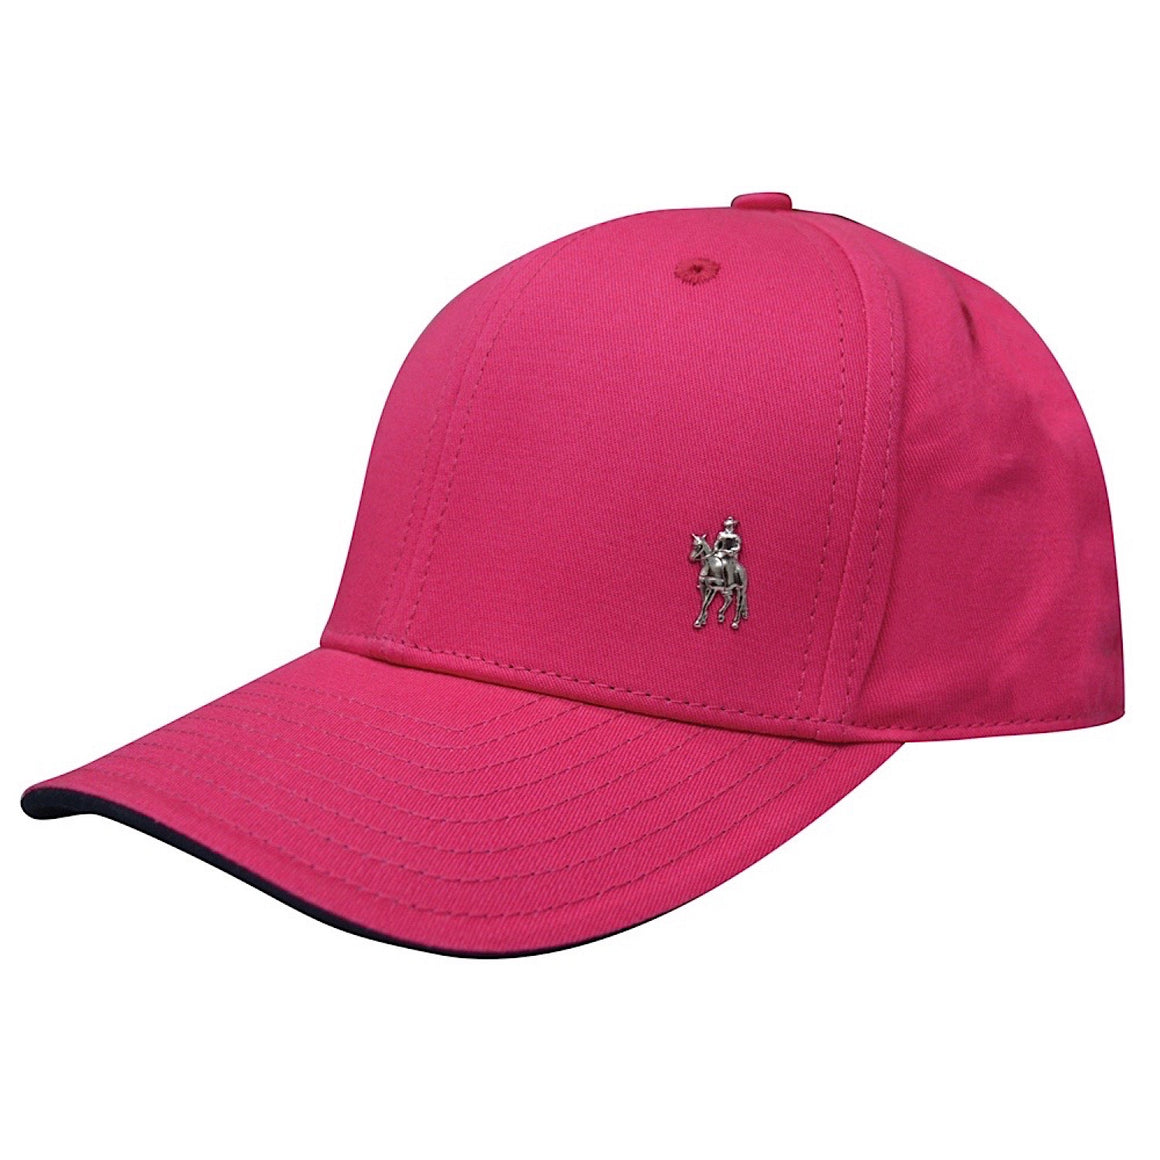 Thomas Cook Signature Cap Pink